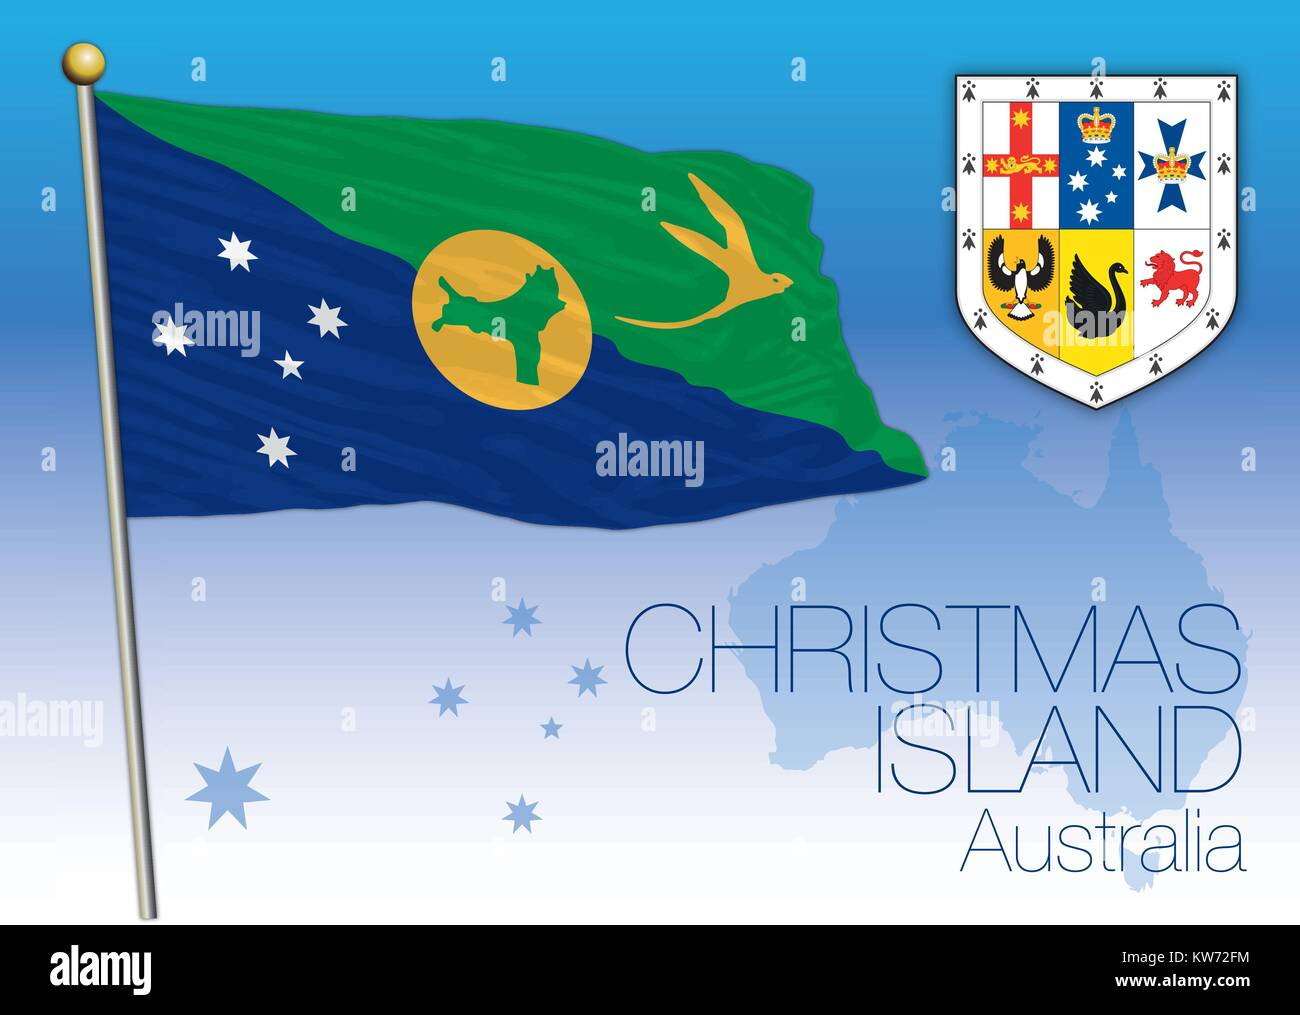 Christmas Island Flag.Christmas Island Flag Of The State And Territory Australia